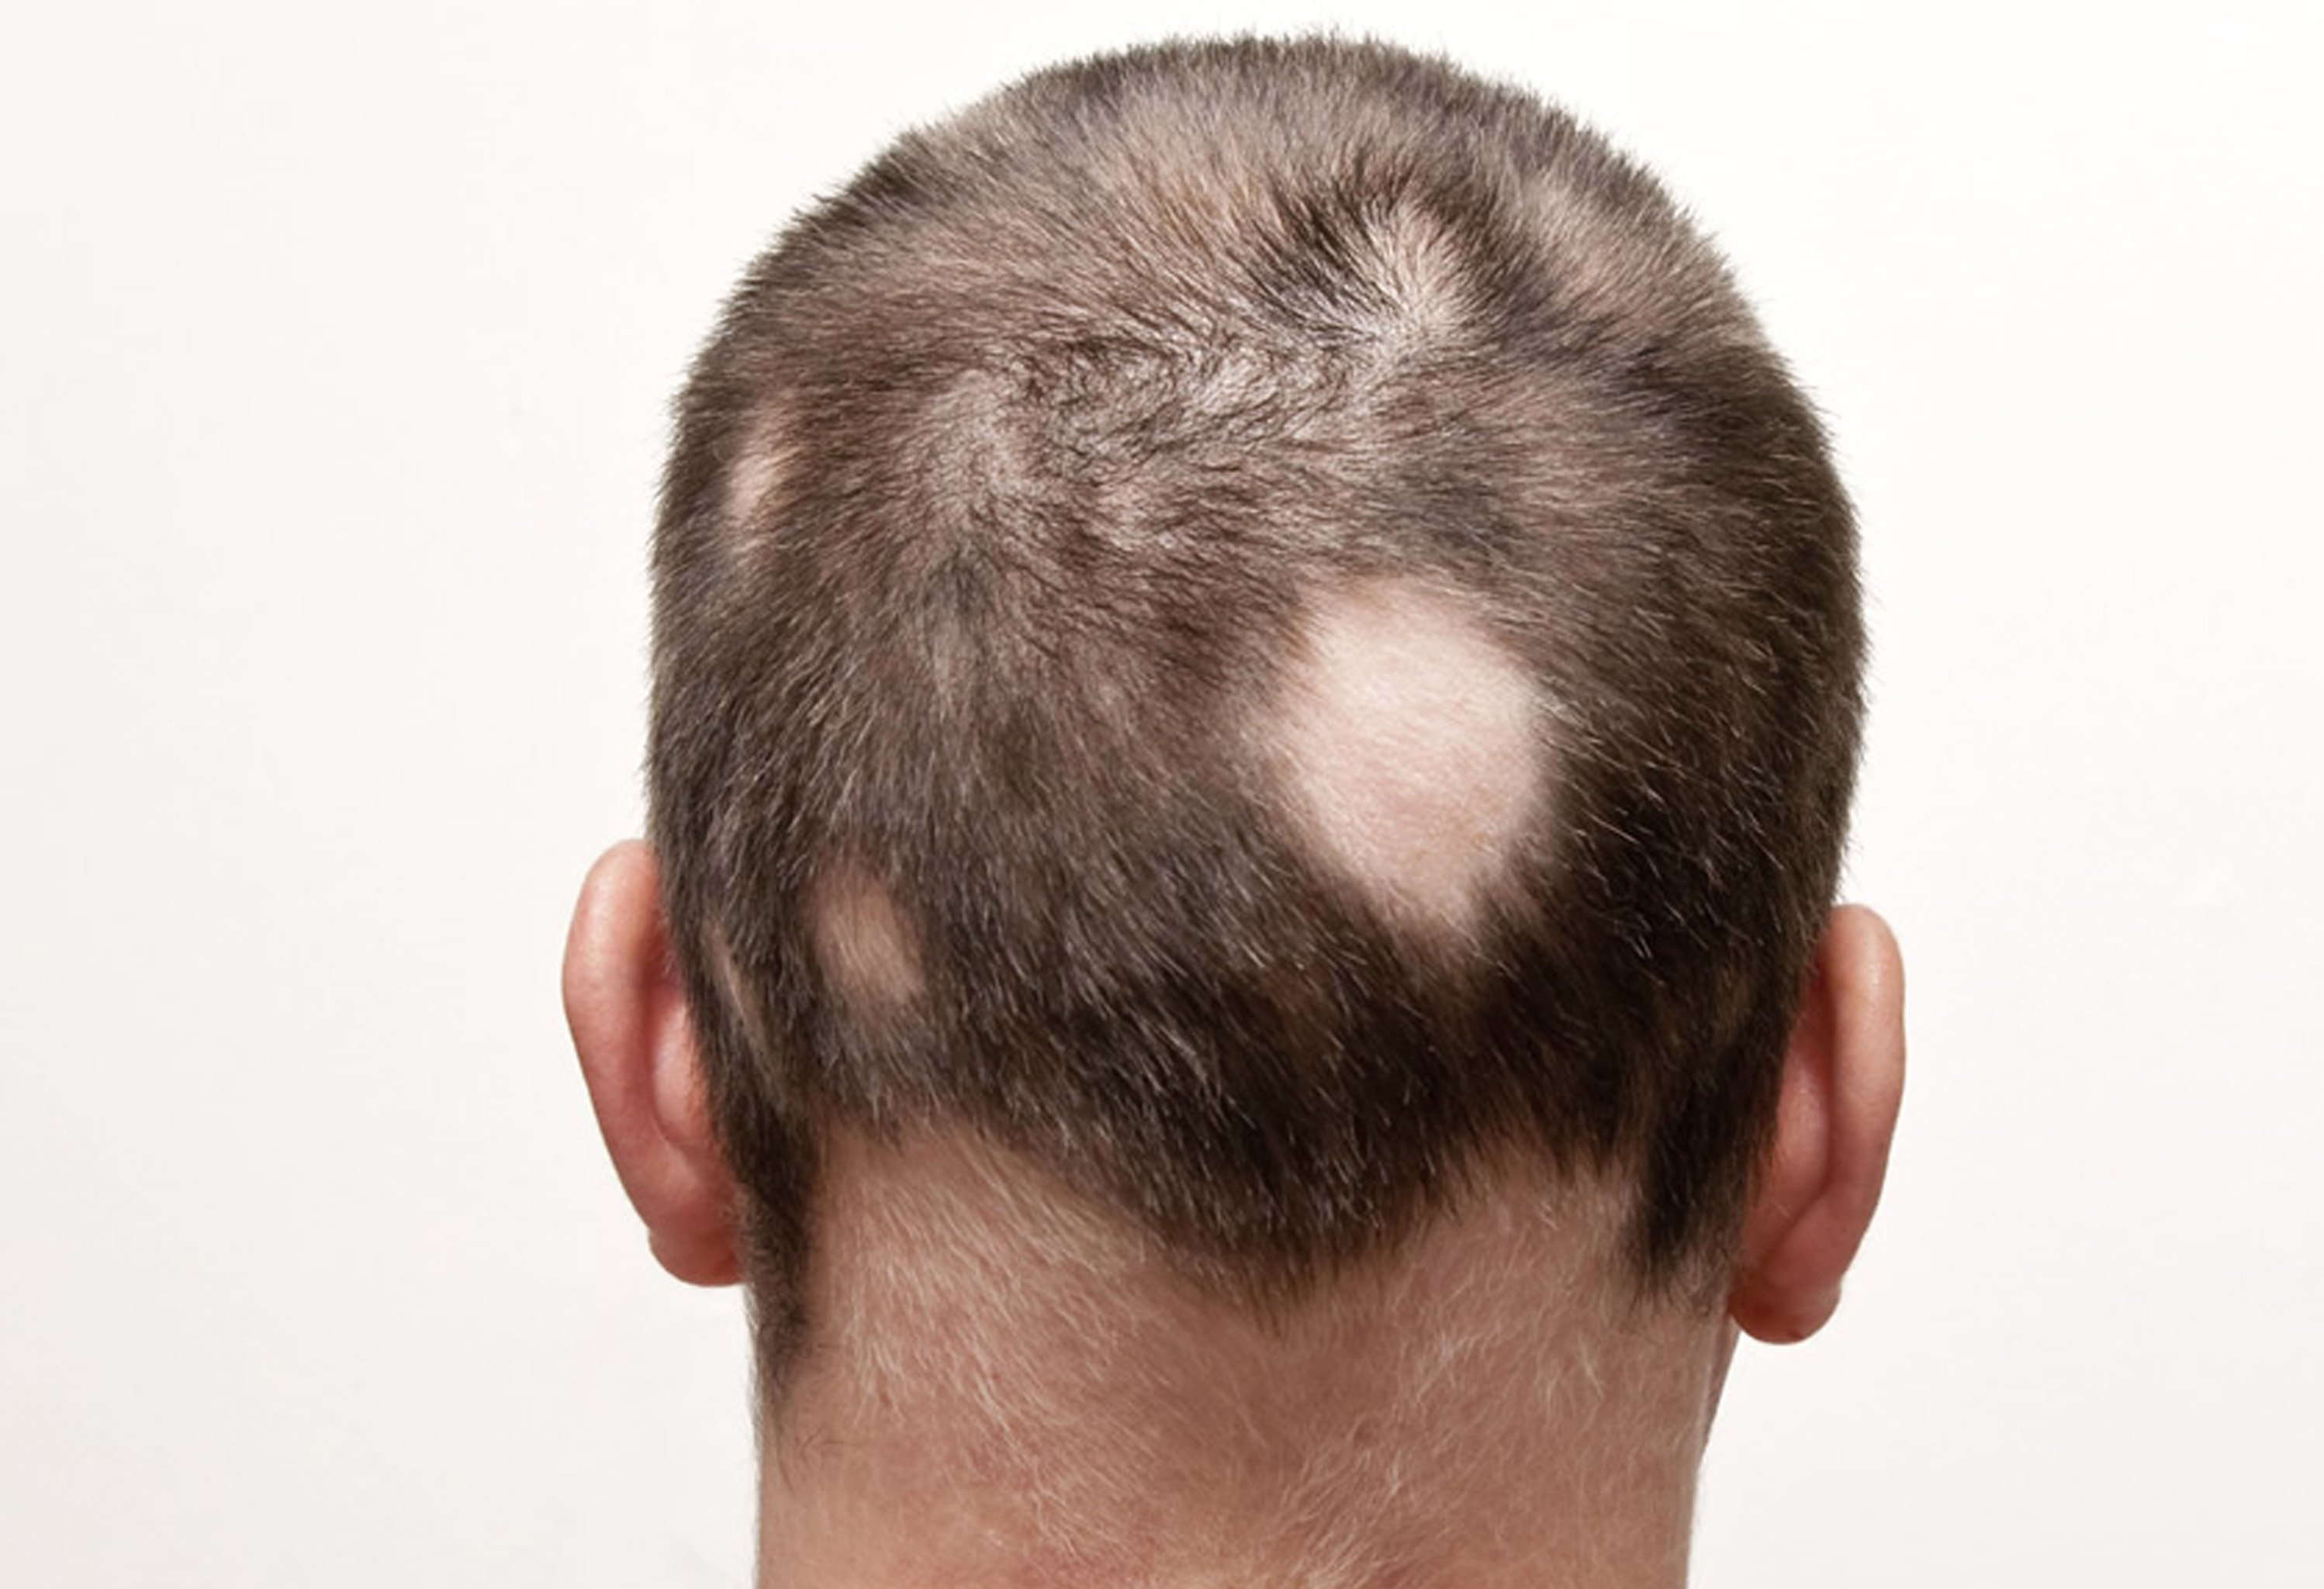 Image result for alopecia""